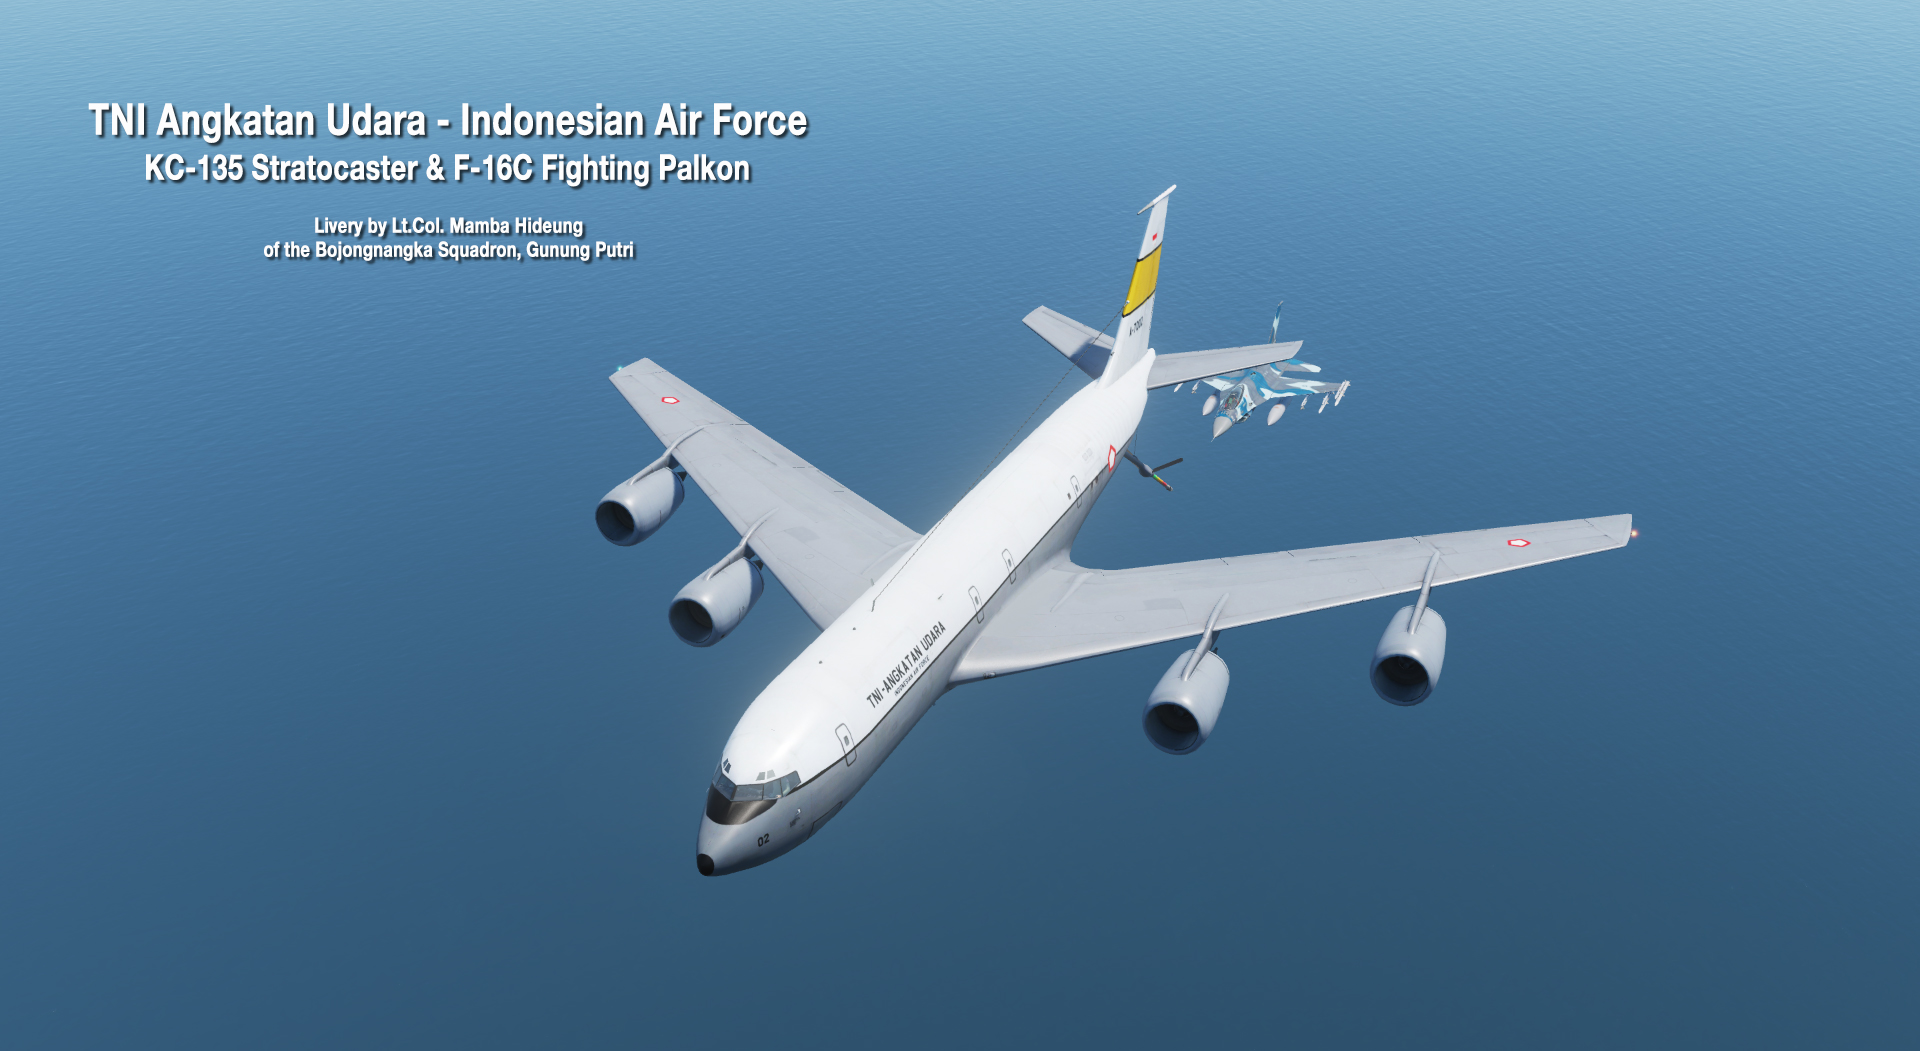 Indonesian Air Force KC-135 Stratotanker and F-16C Fighting Falcon